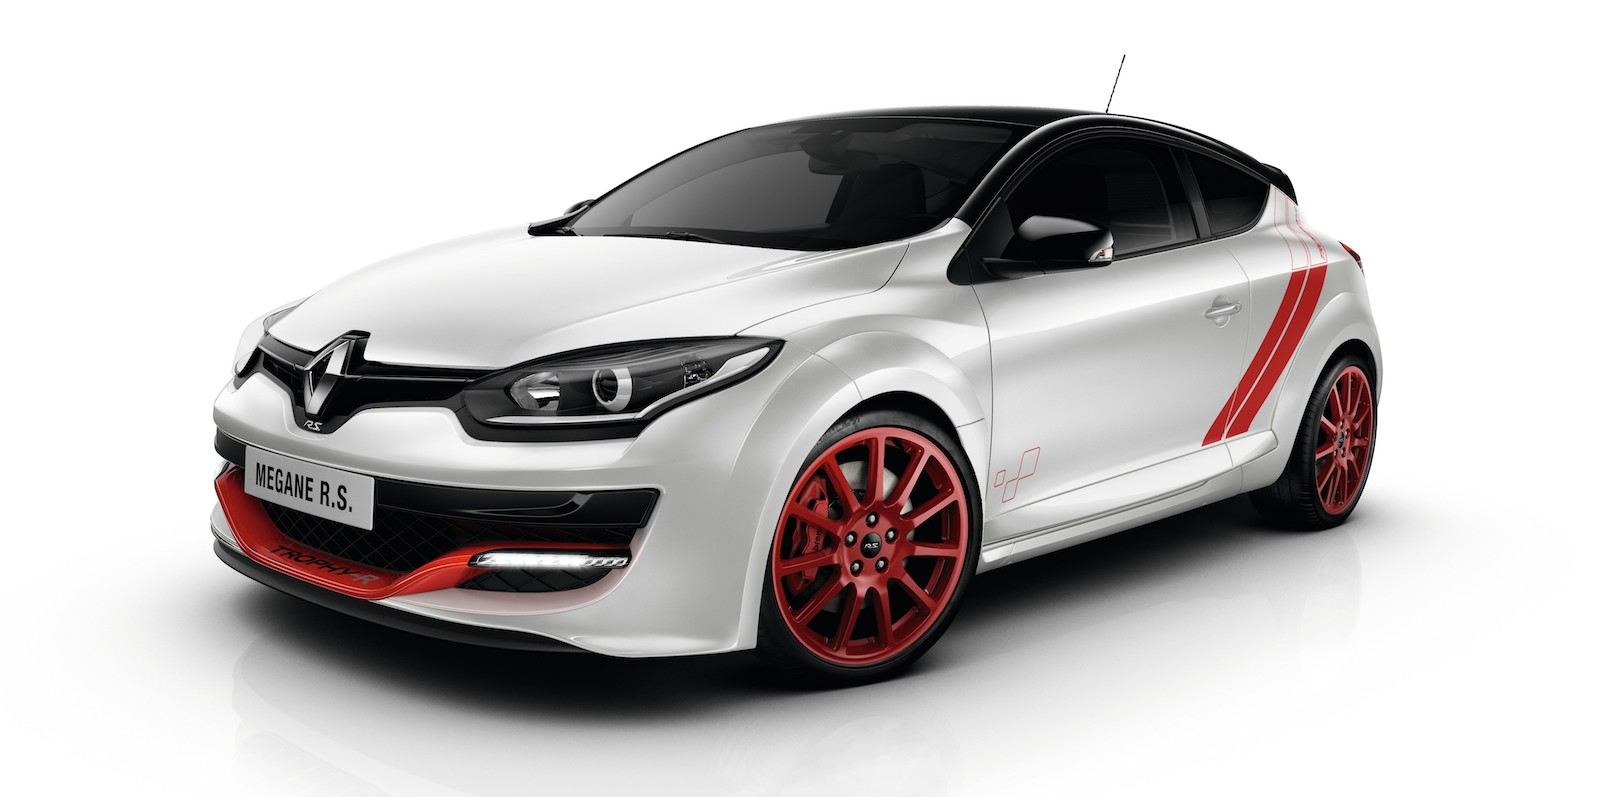 renault megane rs275 trophy r priced from 61 990 photos 1 of 9. Black Bedroom Furniture Sets. Home Design Ideas